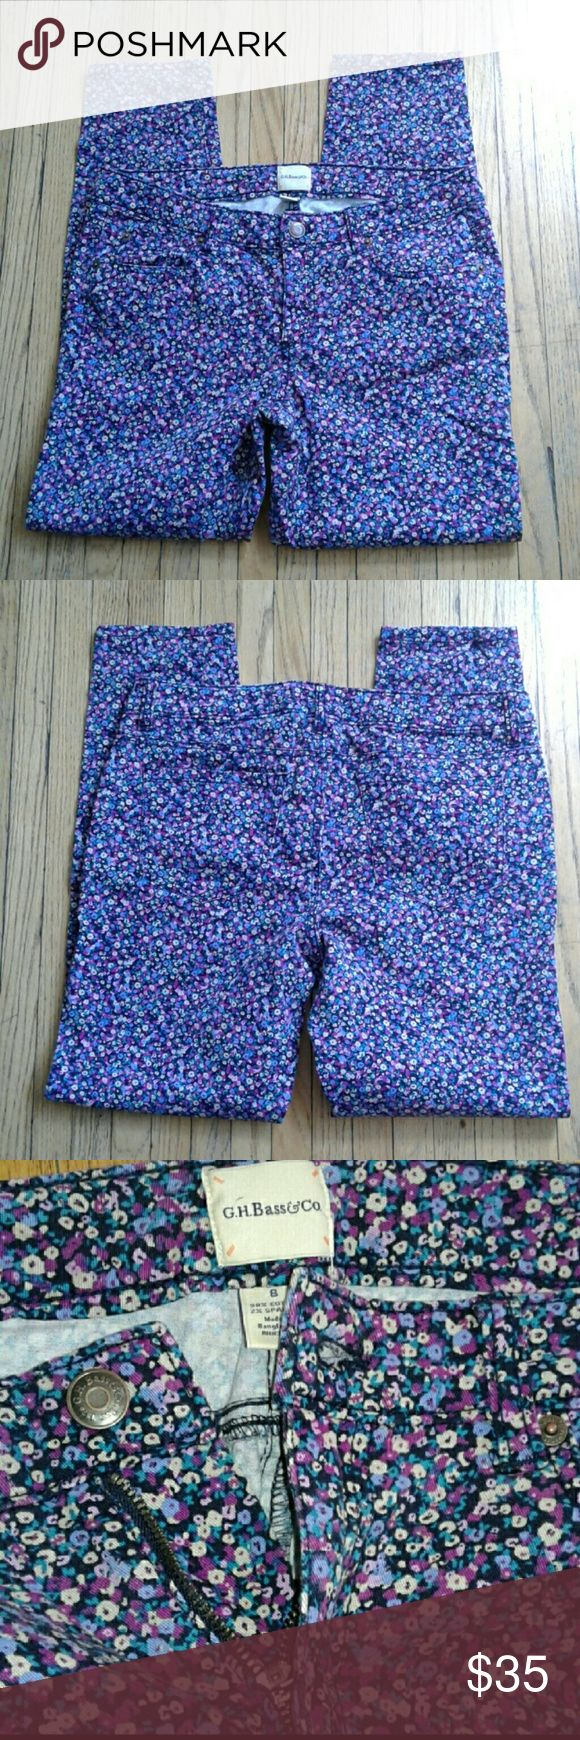 G. H. Bass dainty floral skinny pants Skinny pants. Back and front pockets. Button and zip closure. Dainty floral pattern. Purple, pink, blue, black, teal and cream. Perfect for spring!! Nwot! g. h. bass Pants Skinny